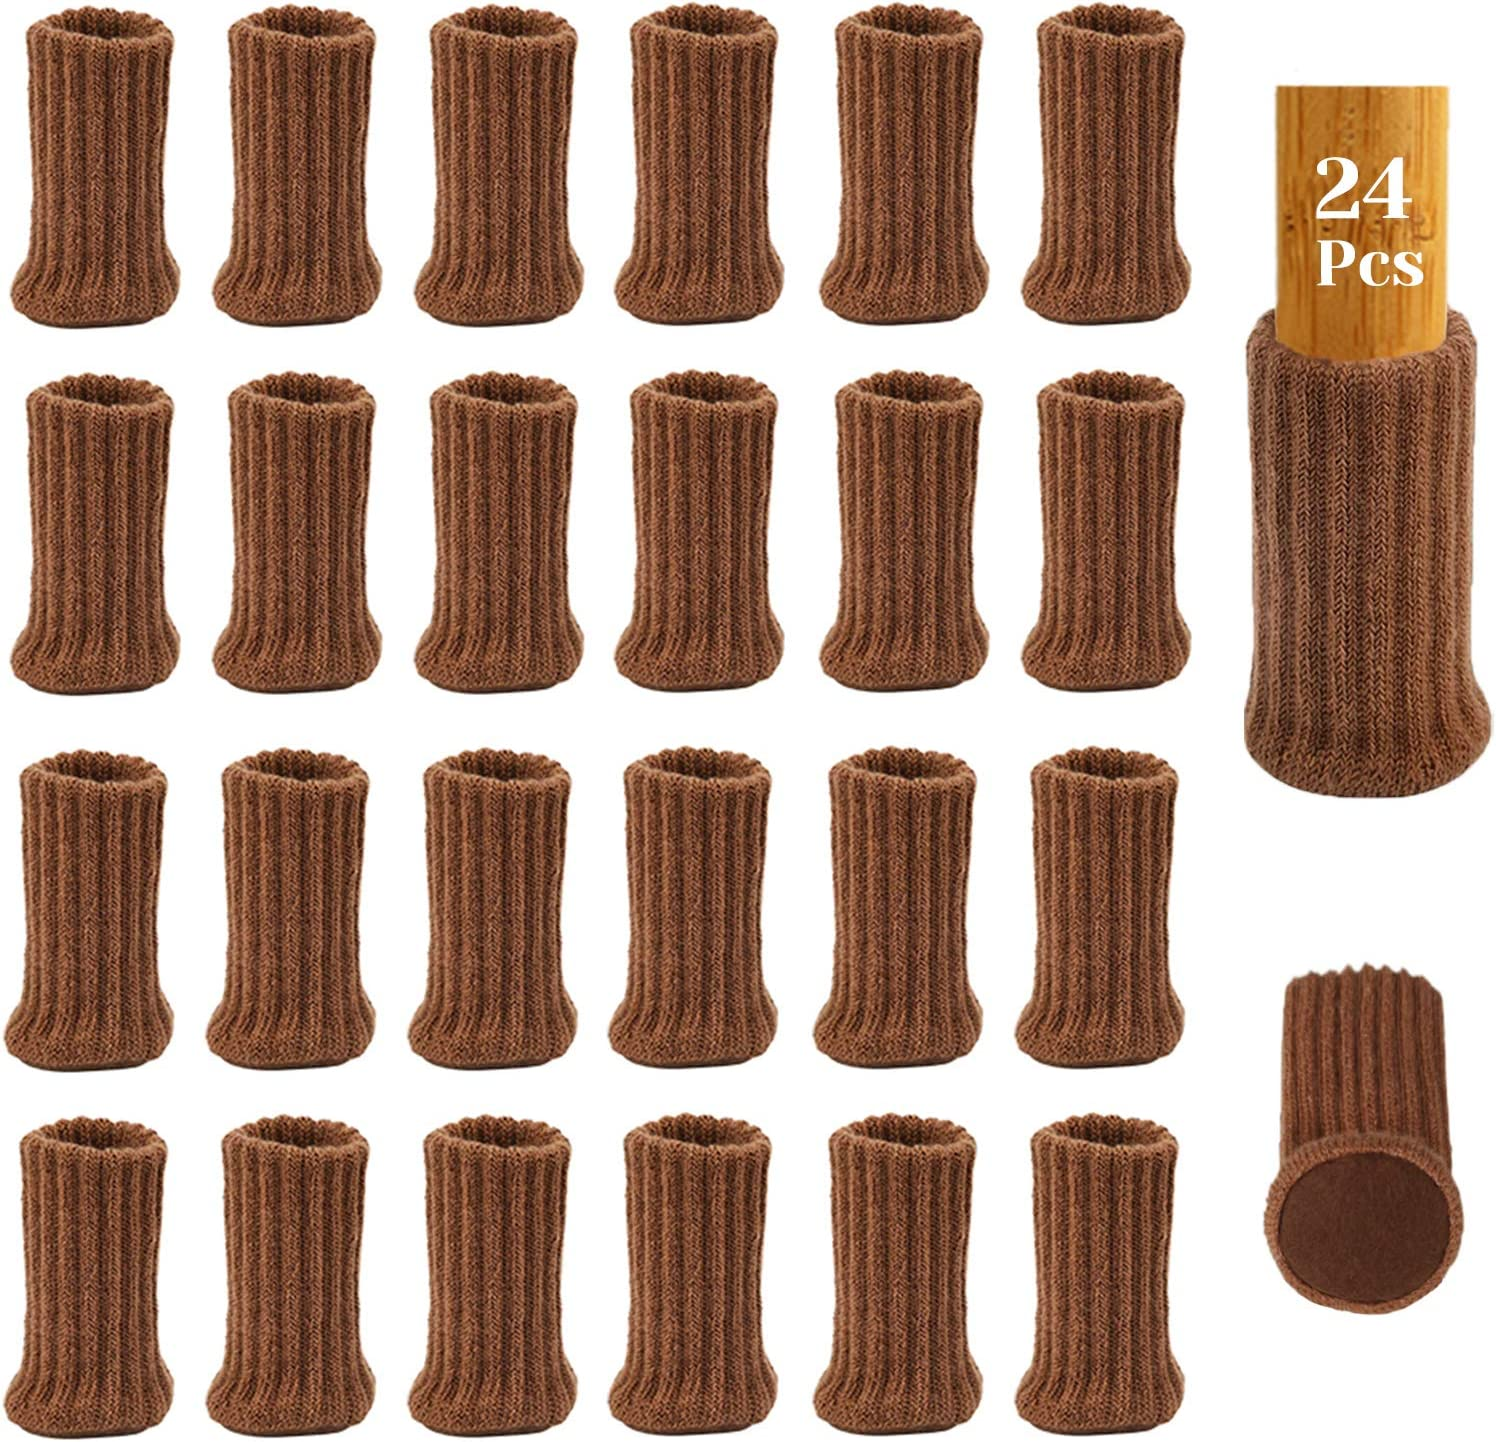 24Pcs Chair Leg Socks with Felt Pads, AUHOKY High Elastic Knitted Furniture Booties with Double Layered, Non-Slip Thick Floor Protectors Covers Pads Caps Set - Avoid Scratches & Noise (Brown)